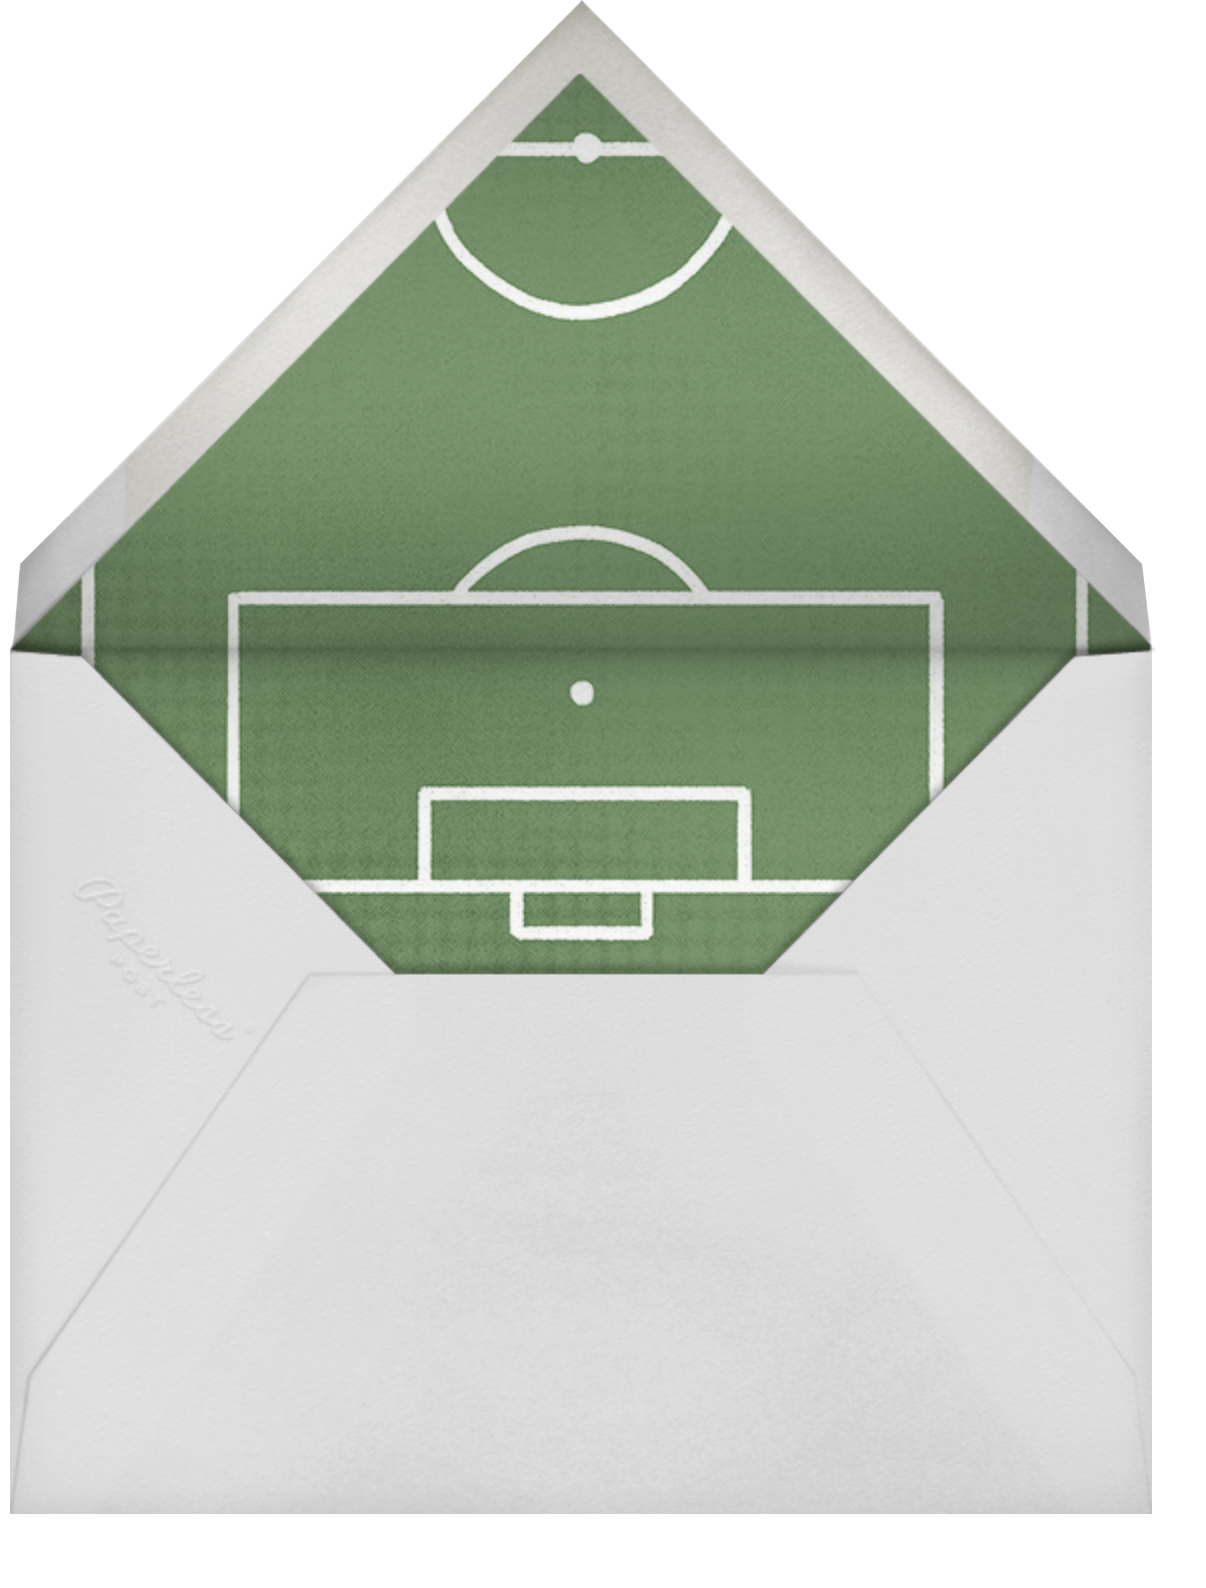 Courtside Seats - Soccer - Paperless Post - Bat and bar mitzvah - envelope back